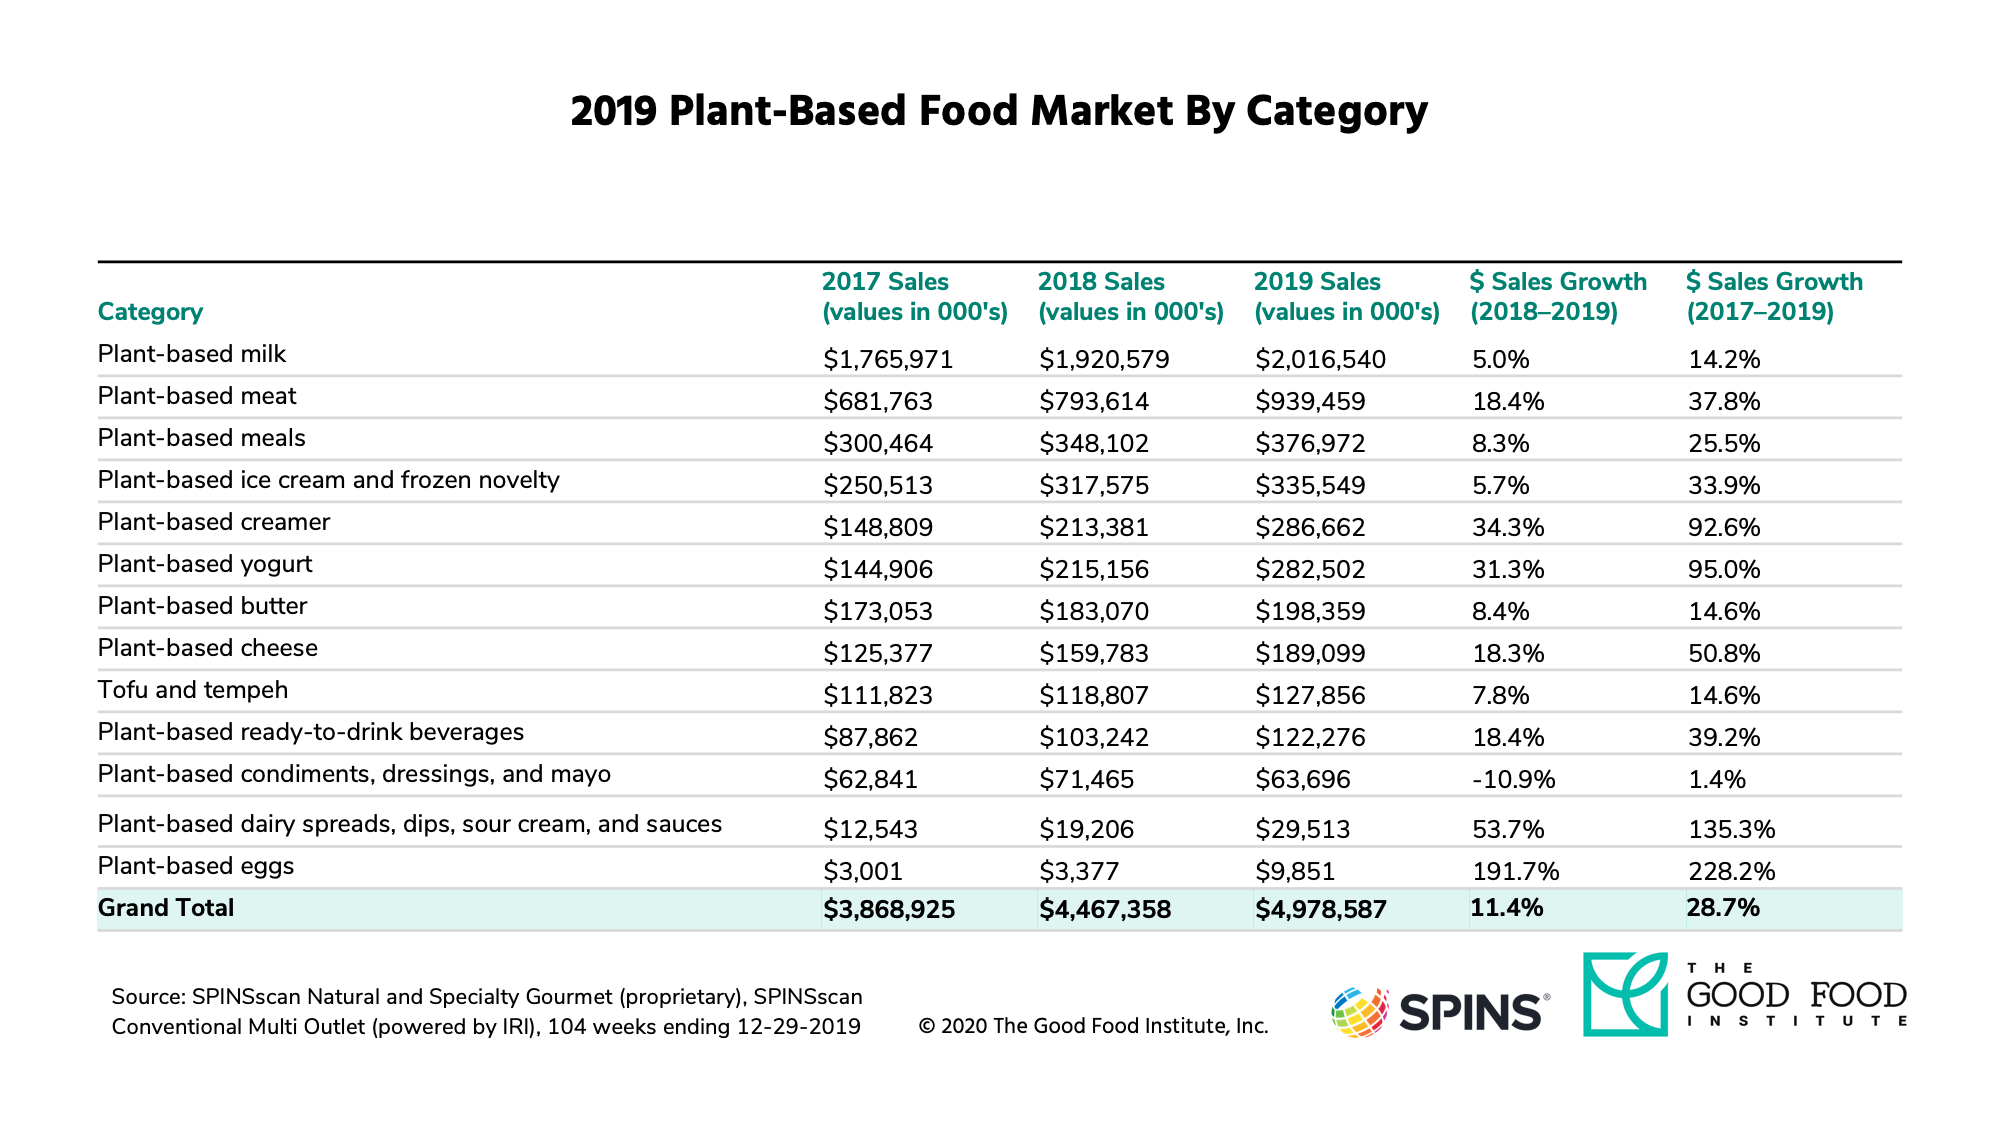 By retail sales, the plant-based meat market size grew 37 percent from 2017 to 2019.